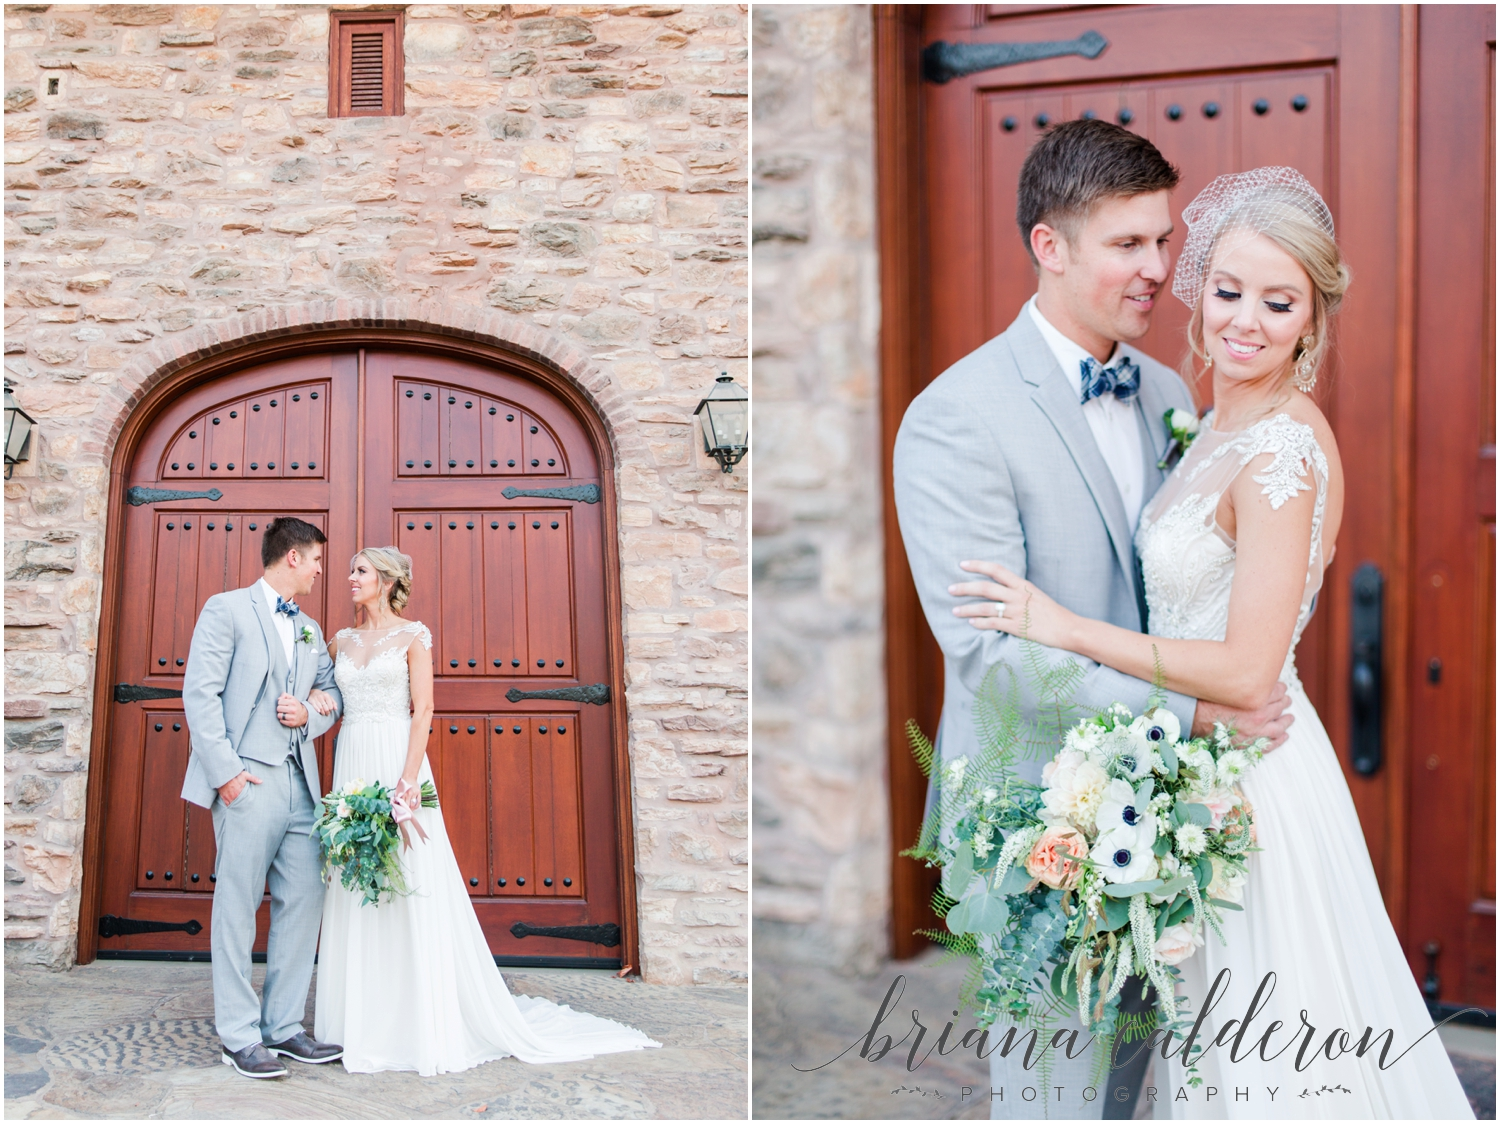 Regale Winery Wedding photos by Briana Calderon Photography_0634.jpg